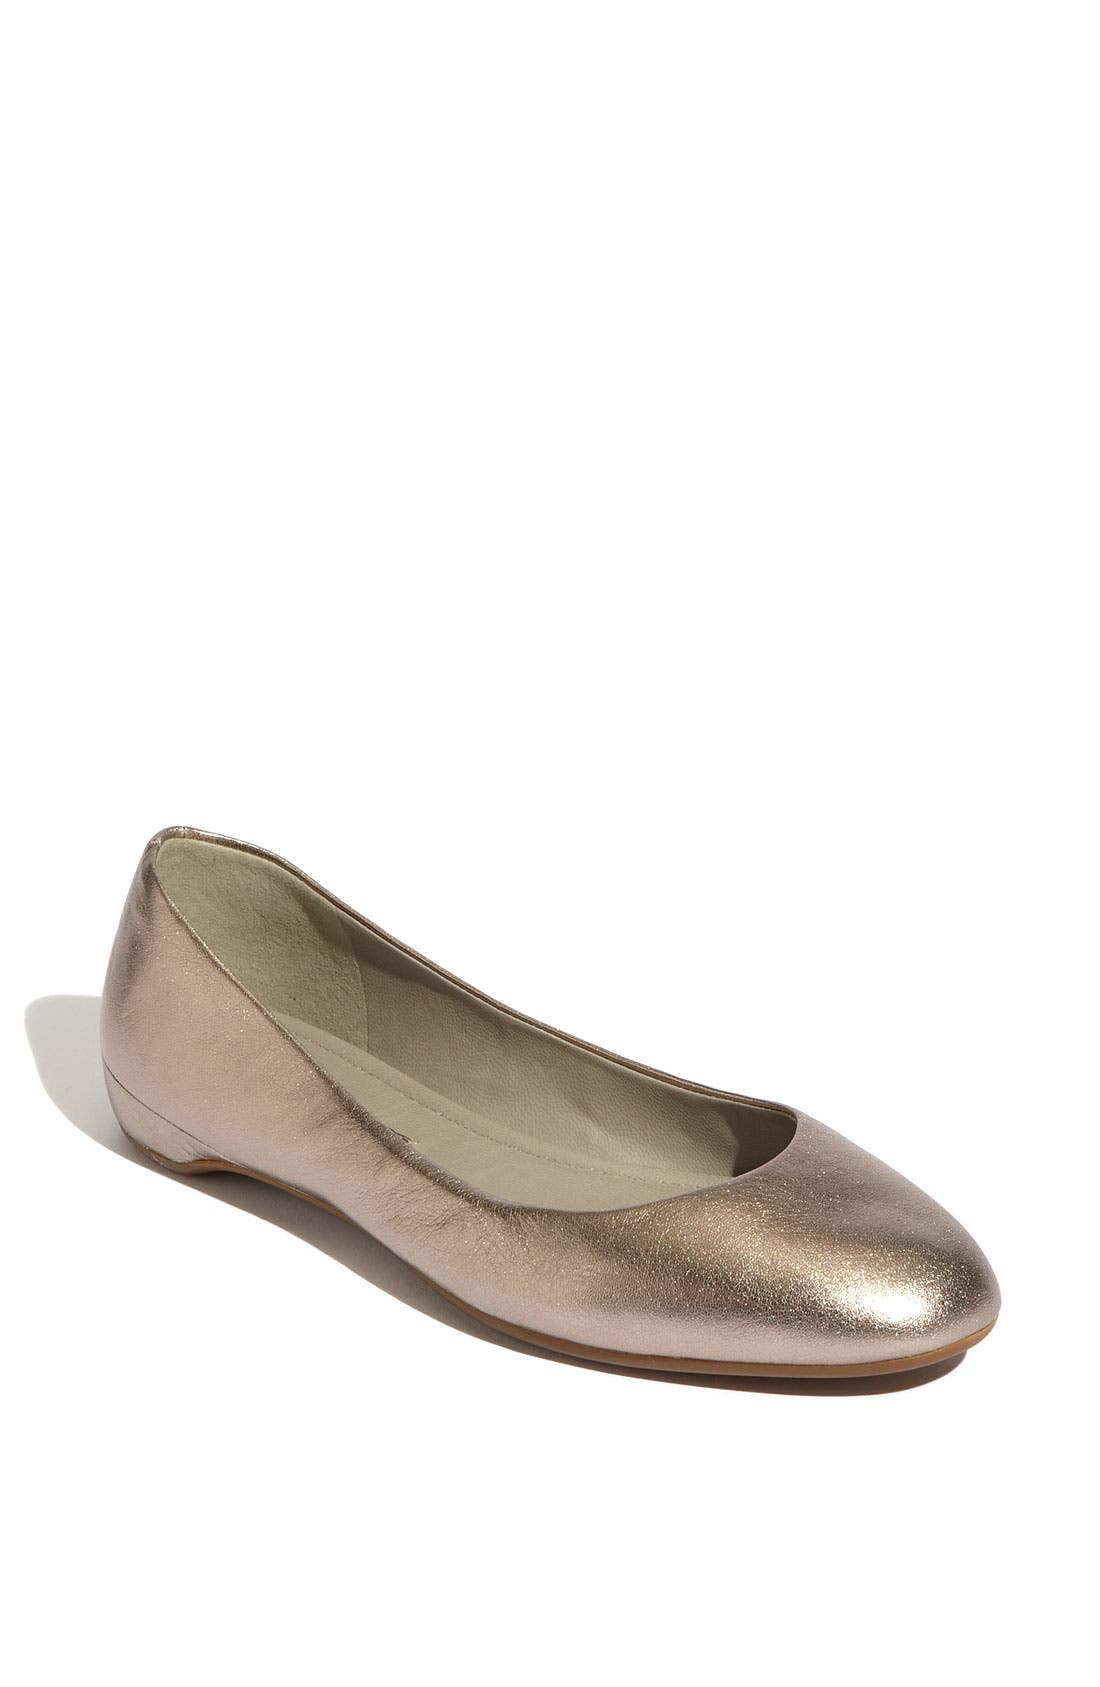 Alternate Image 1 Selected - ECCO 'Mary' Ballerina Flat